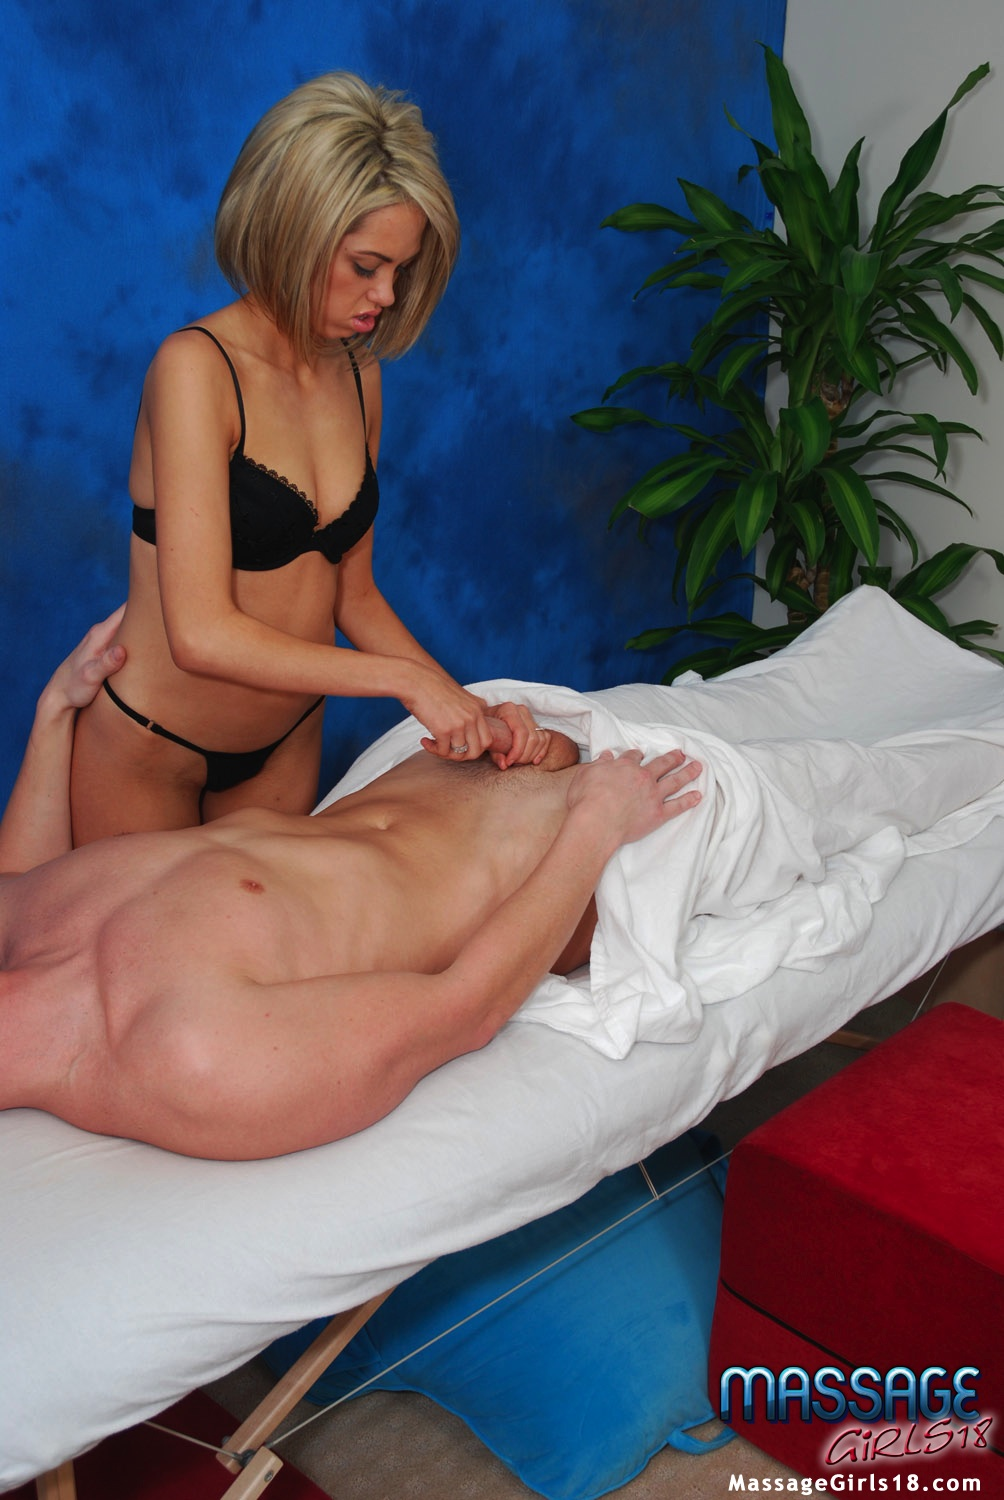 Cleared massage with blowjob happy ending